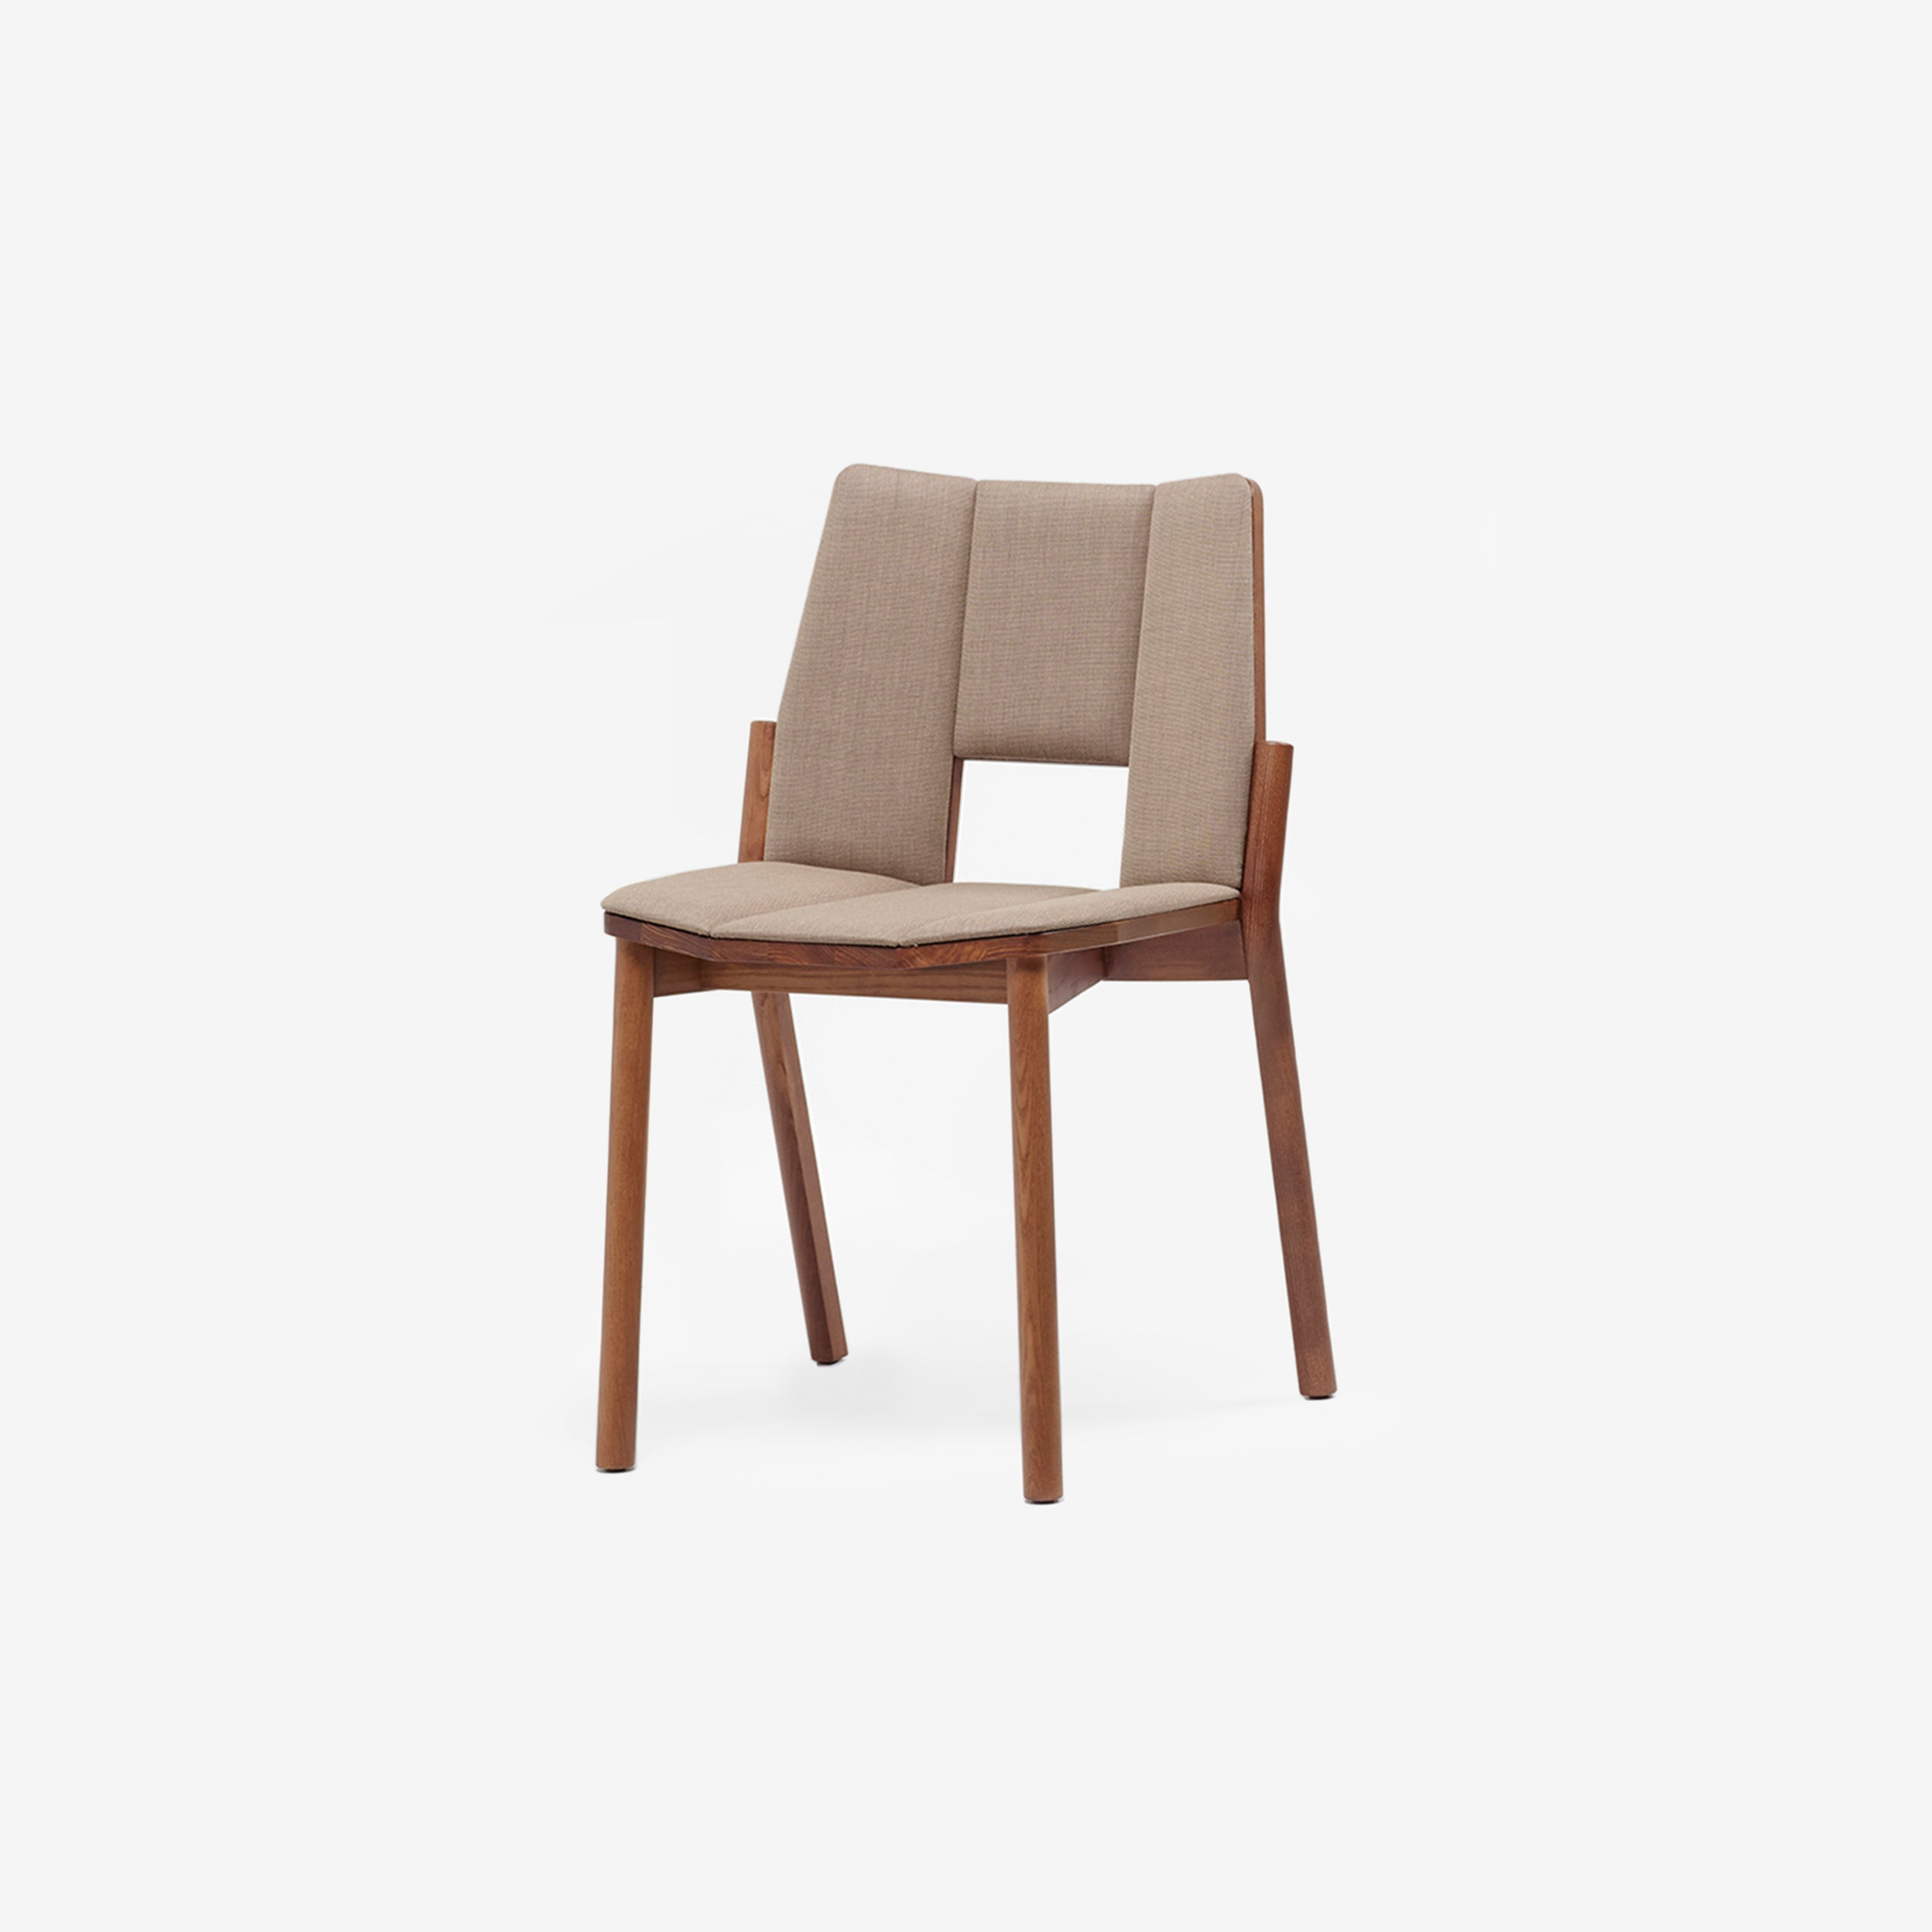 Tronco Chair Upholstered